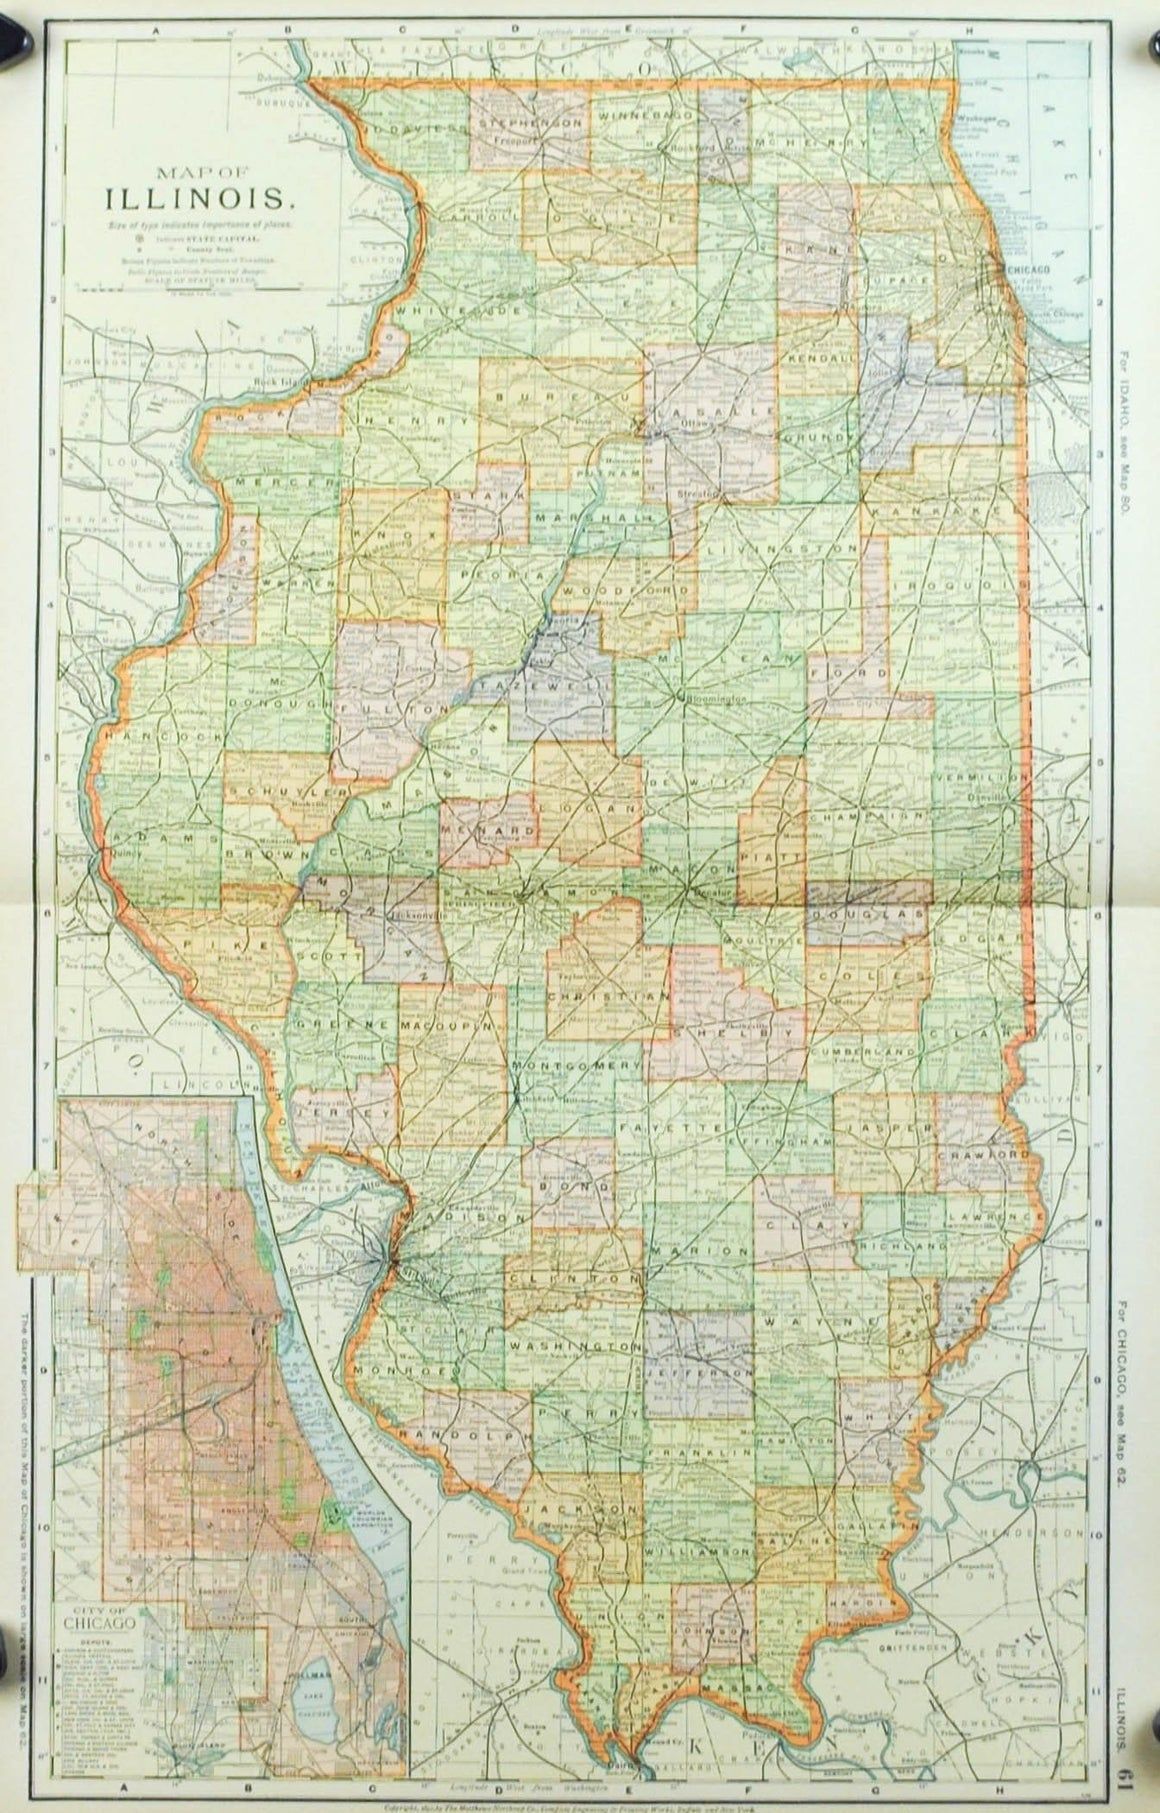 1891 Map of Illinois